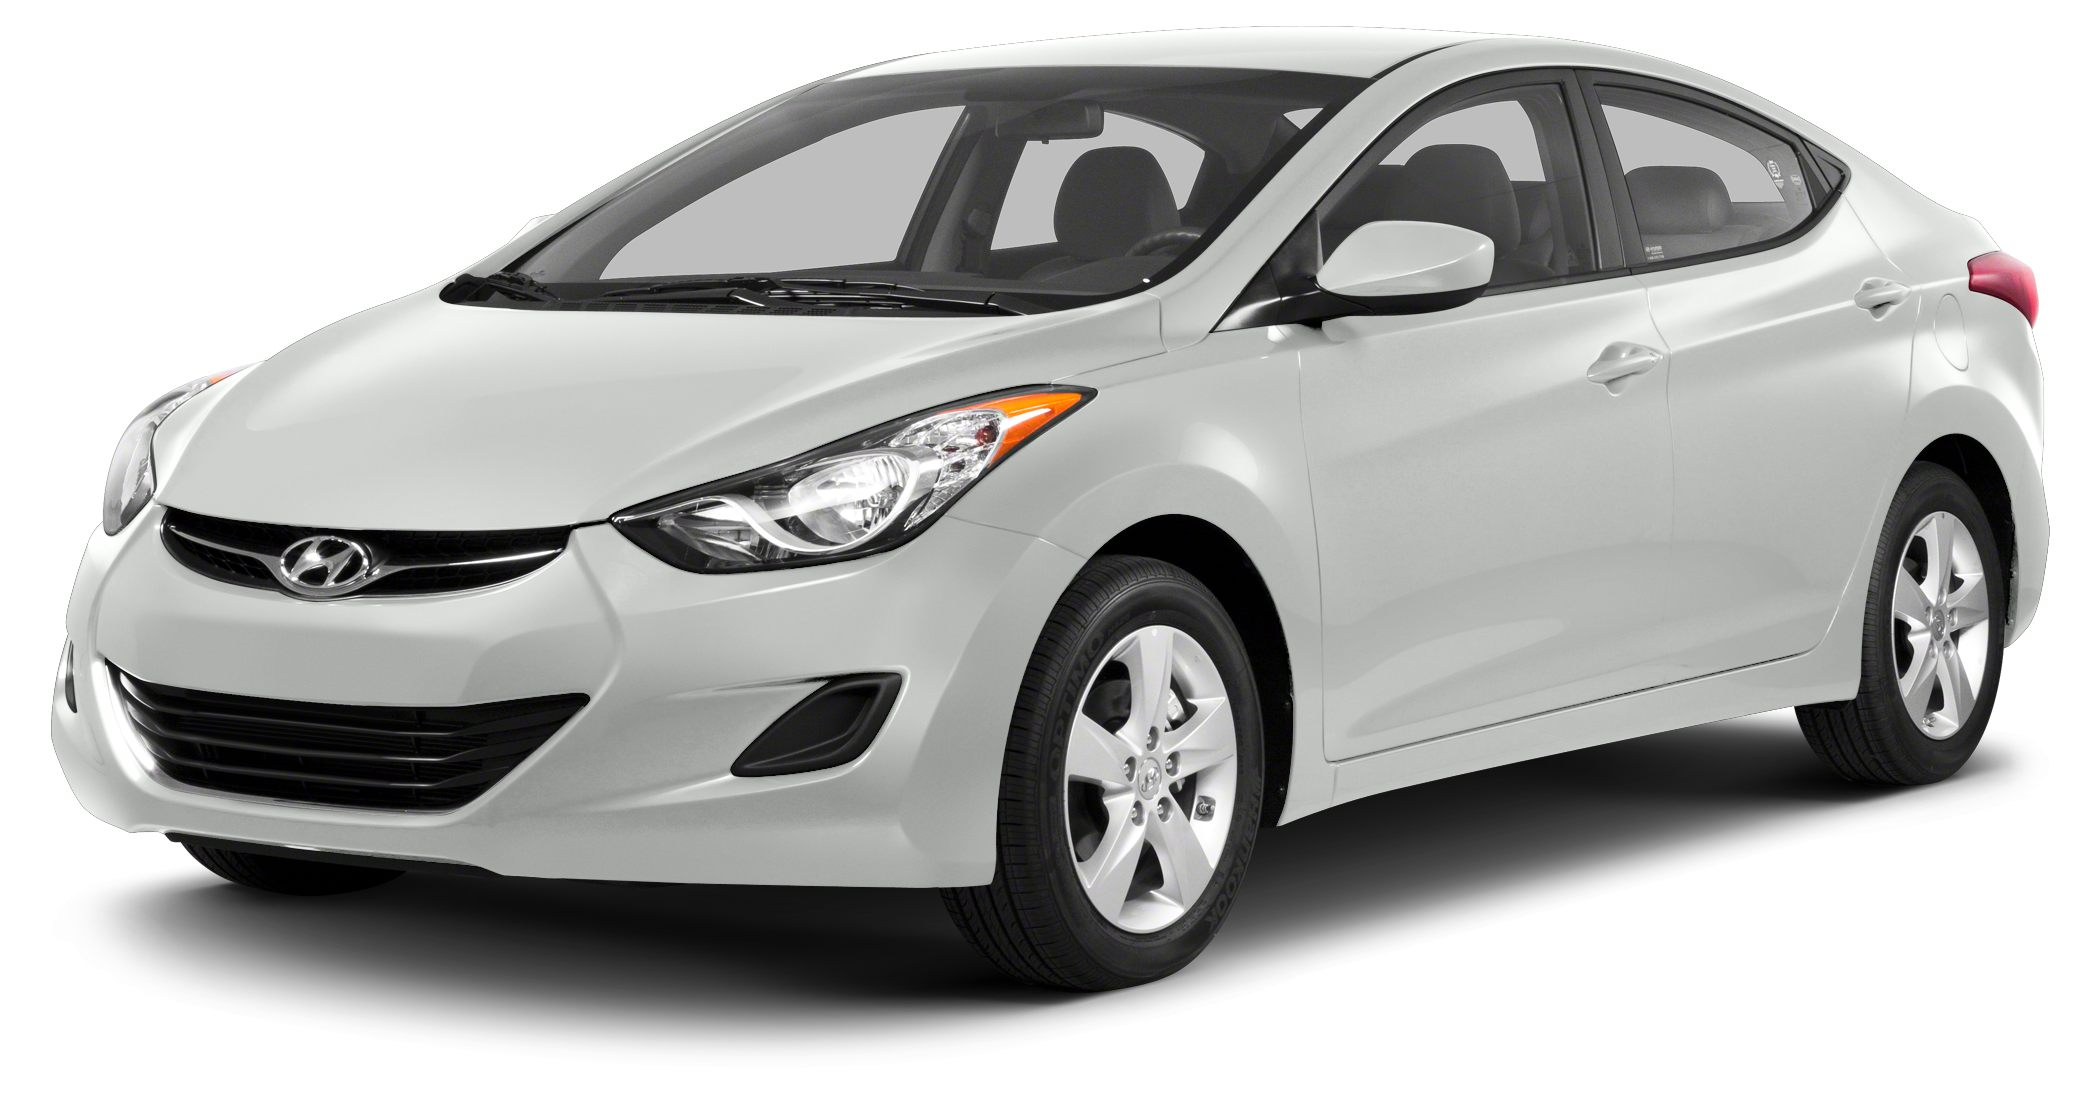 2013 Hyundai Elantra Limited Hyundai Certified --- just 21k miles on this one owner Limited Elantr